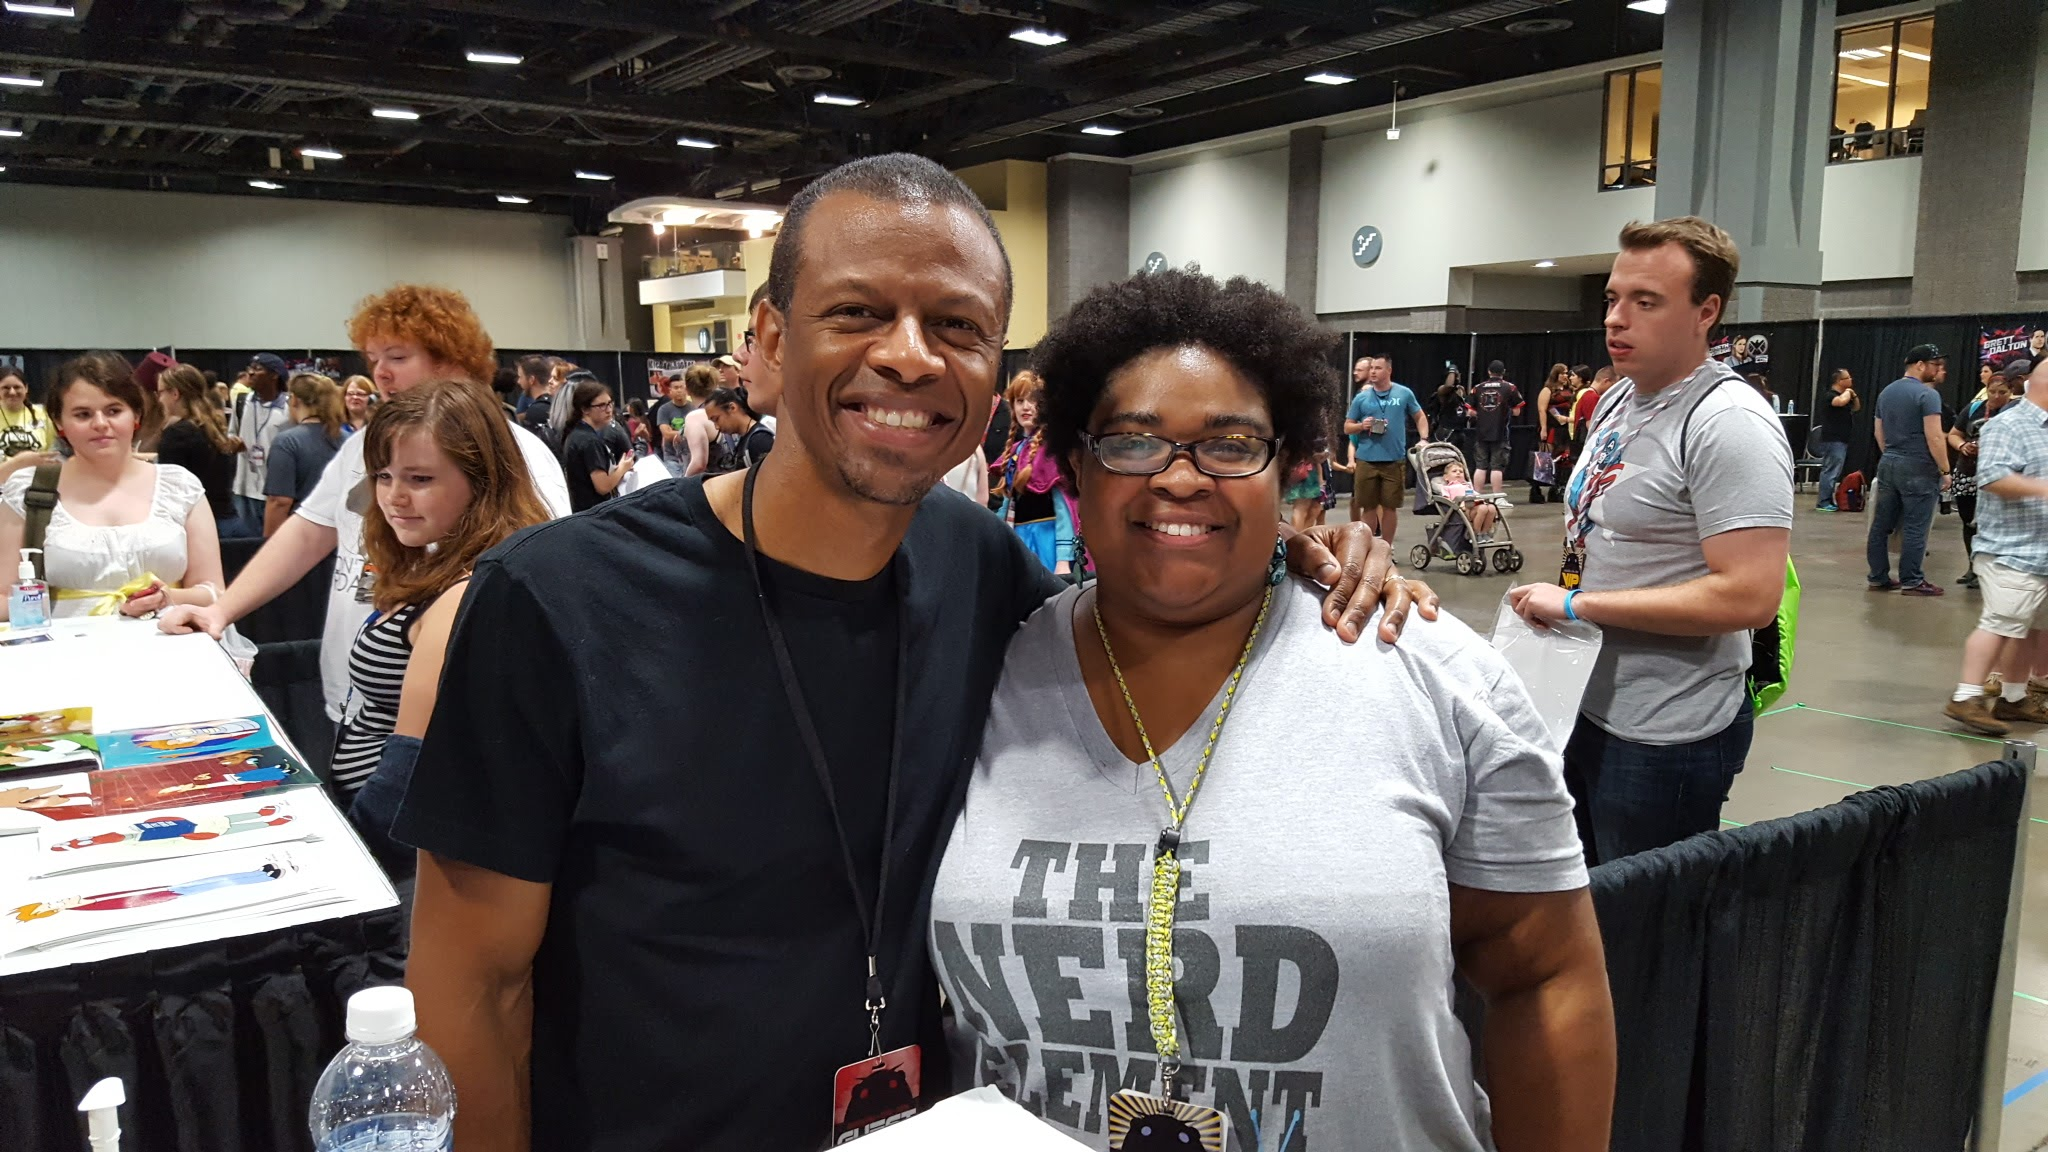 Natty with Phil LaMarr